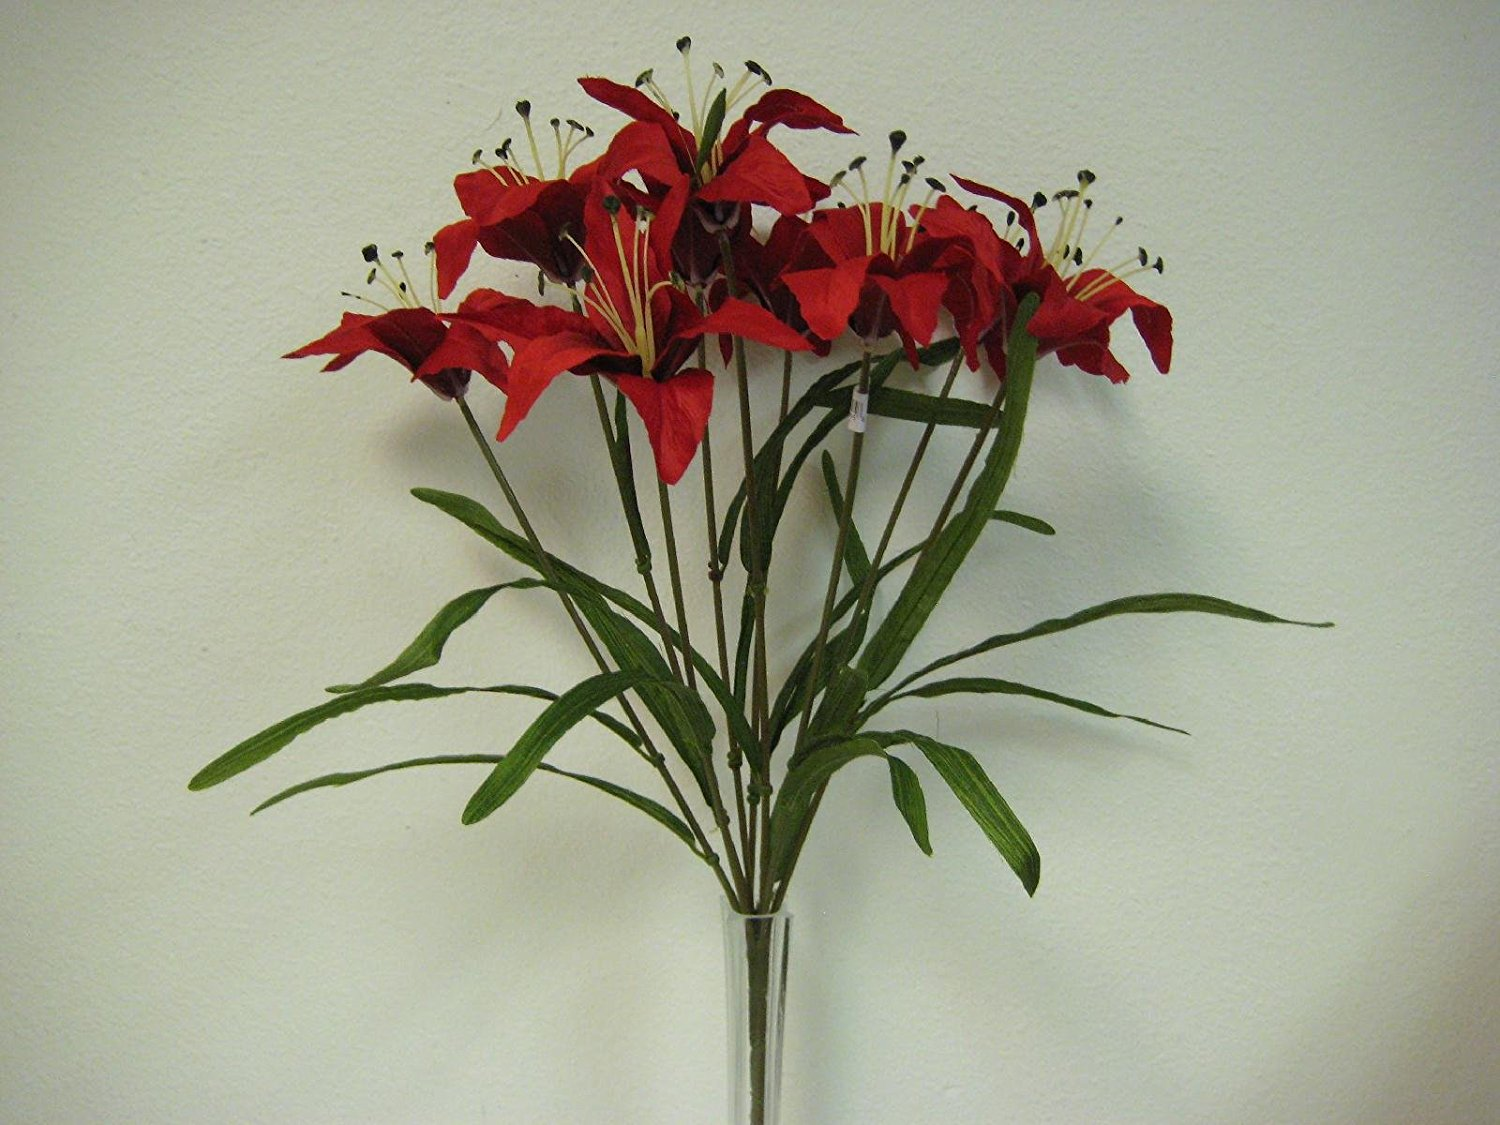 Cheap artificial tiger lily find artificial tiger lily deals on get quotations red tiger lily bush artificial silk flowers 20 bouquet 9 435rd izmirmasajfo